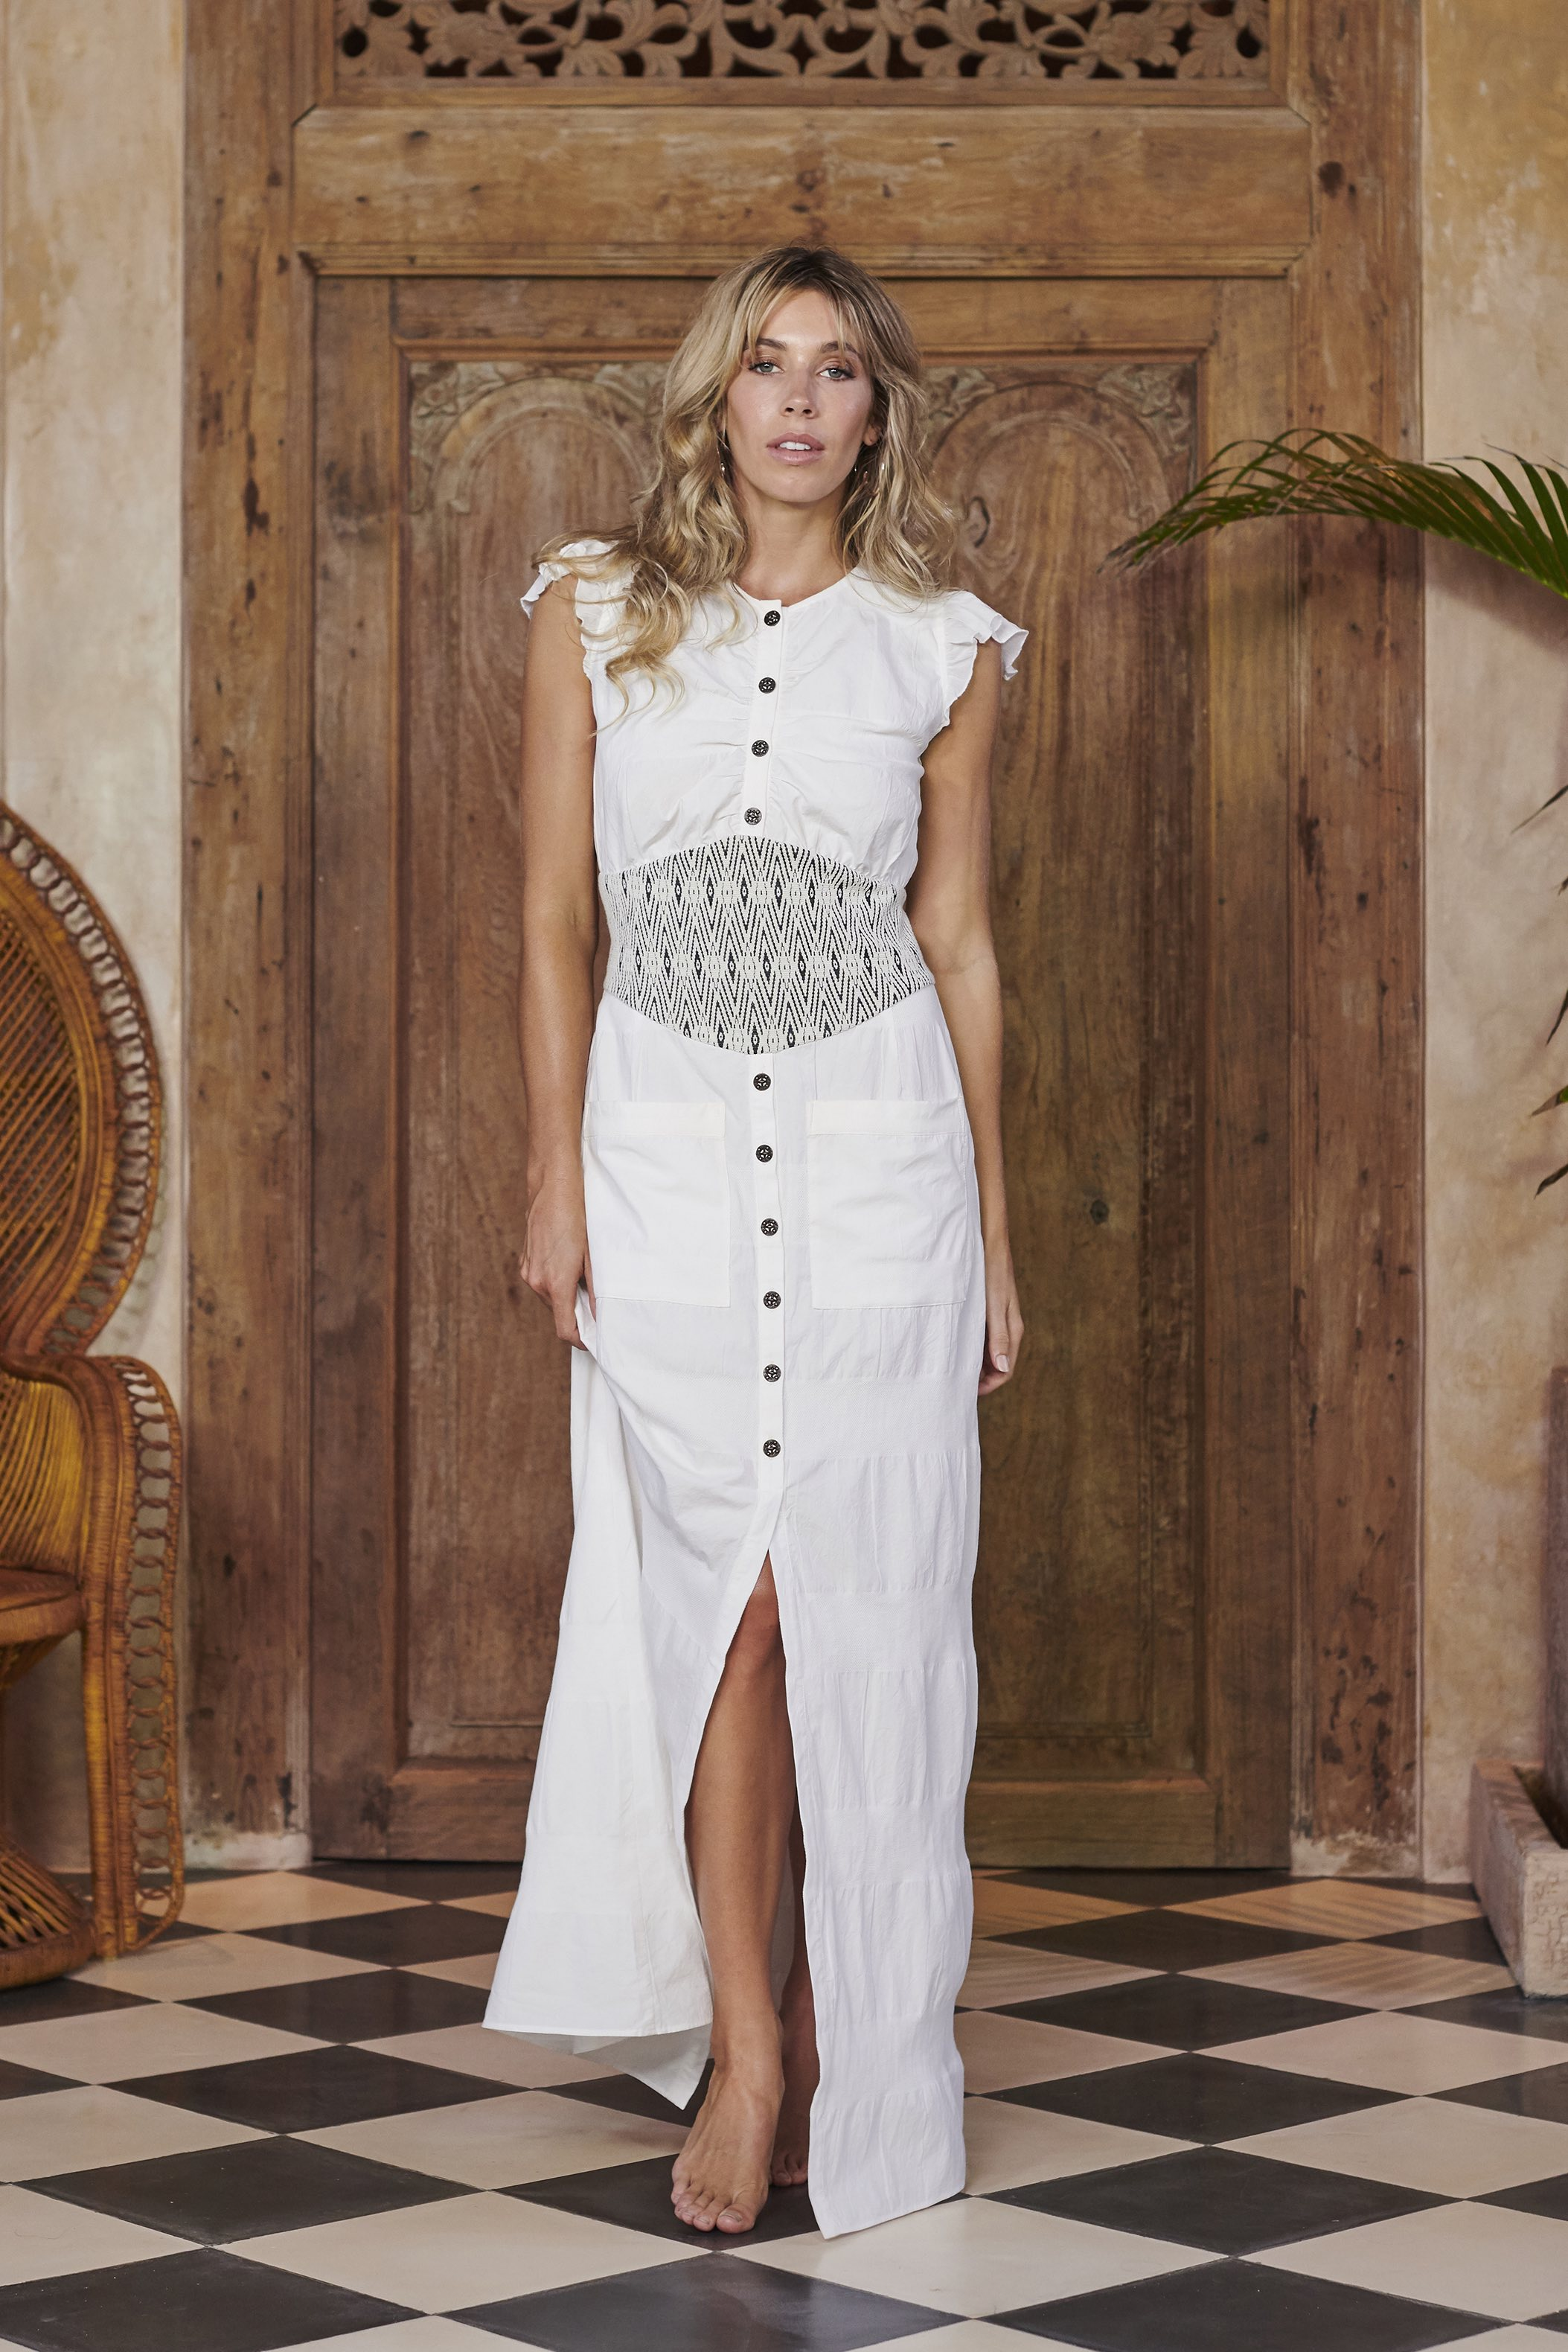 Queen Dress in White Cotton by Akosée on curated-crowd.com